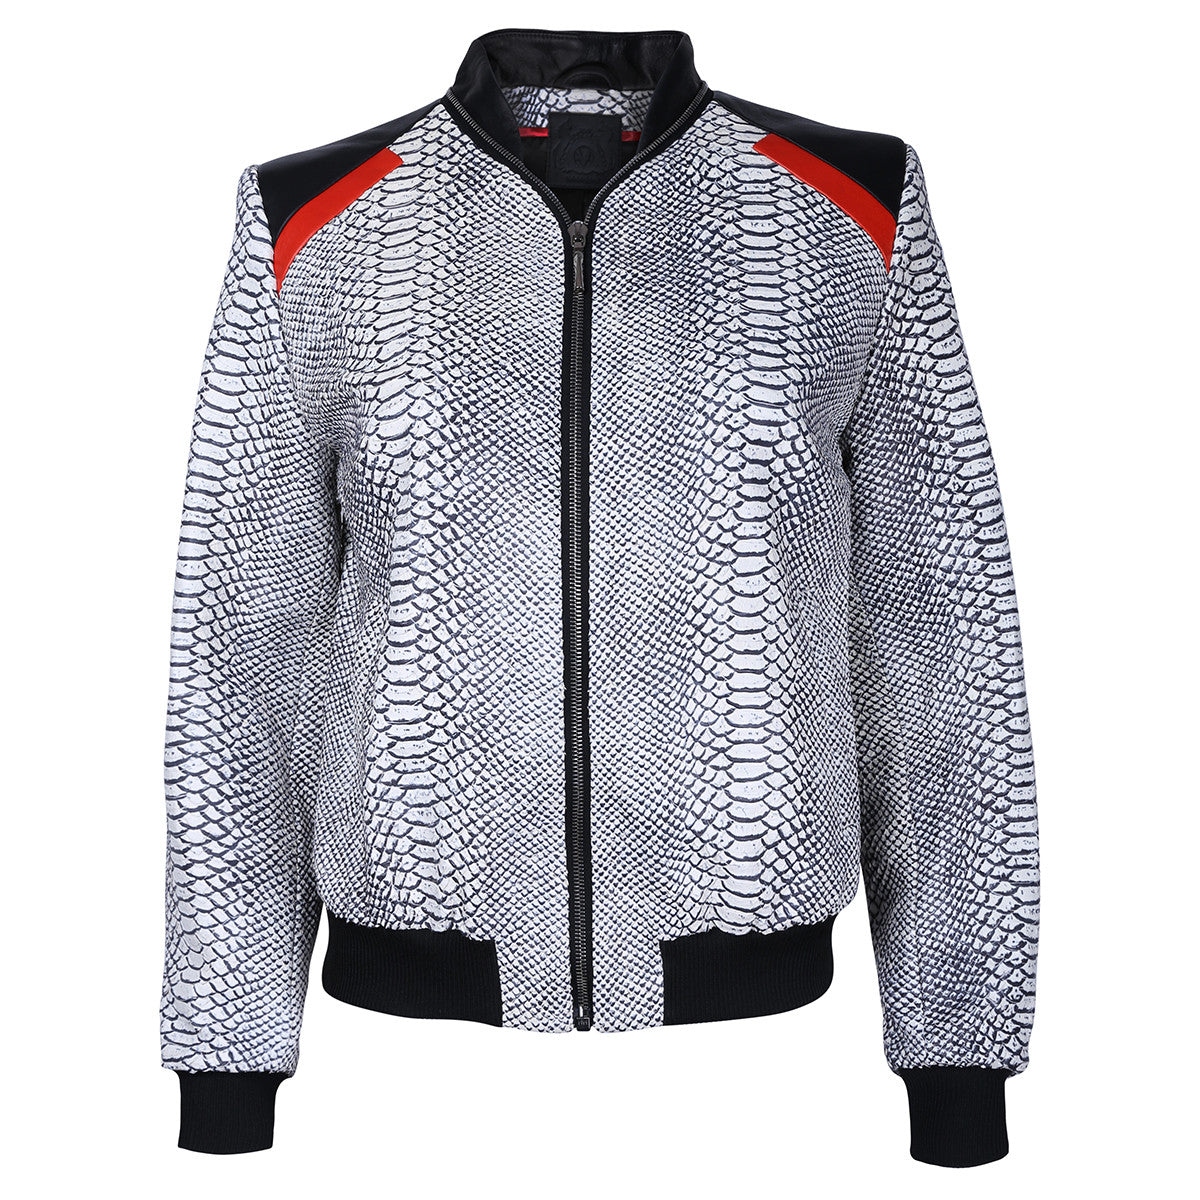 Monochrome Snake Leather Bomber Jacket with Red Motif - VOLS & ORIGINAL